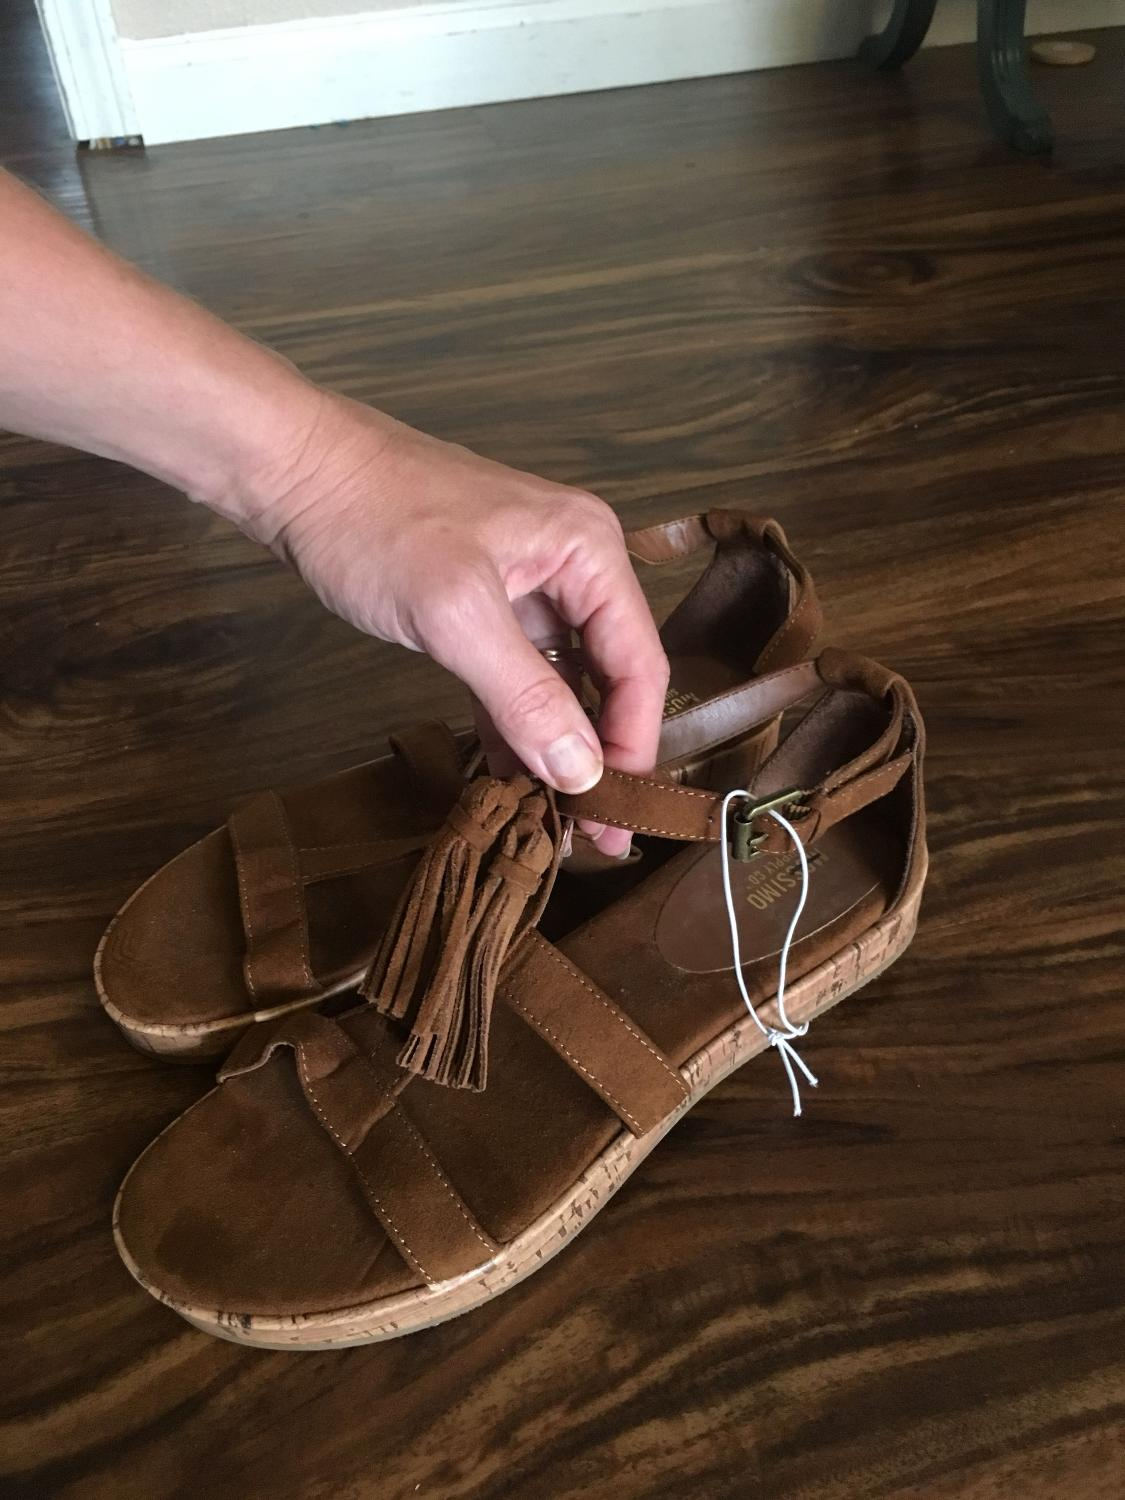 c8db5ceeec75 Best Mossimo Sandals Size 7.5 Nwt for sale in Jefferson City ...